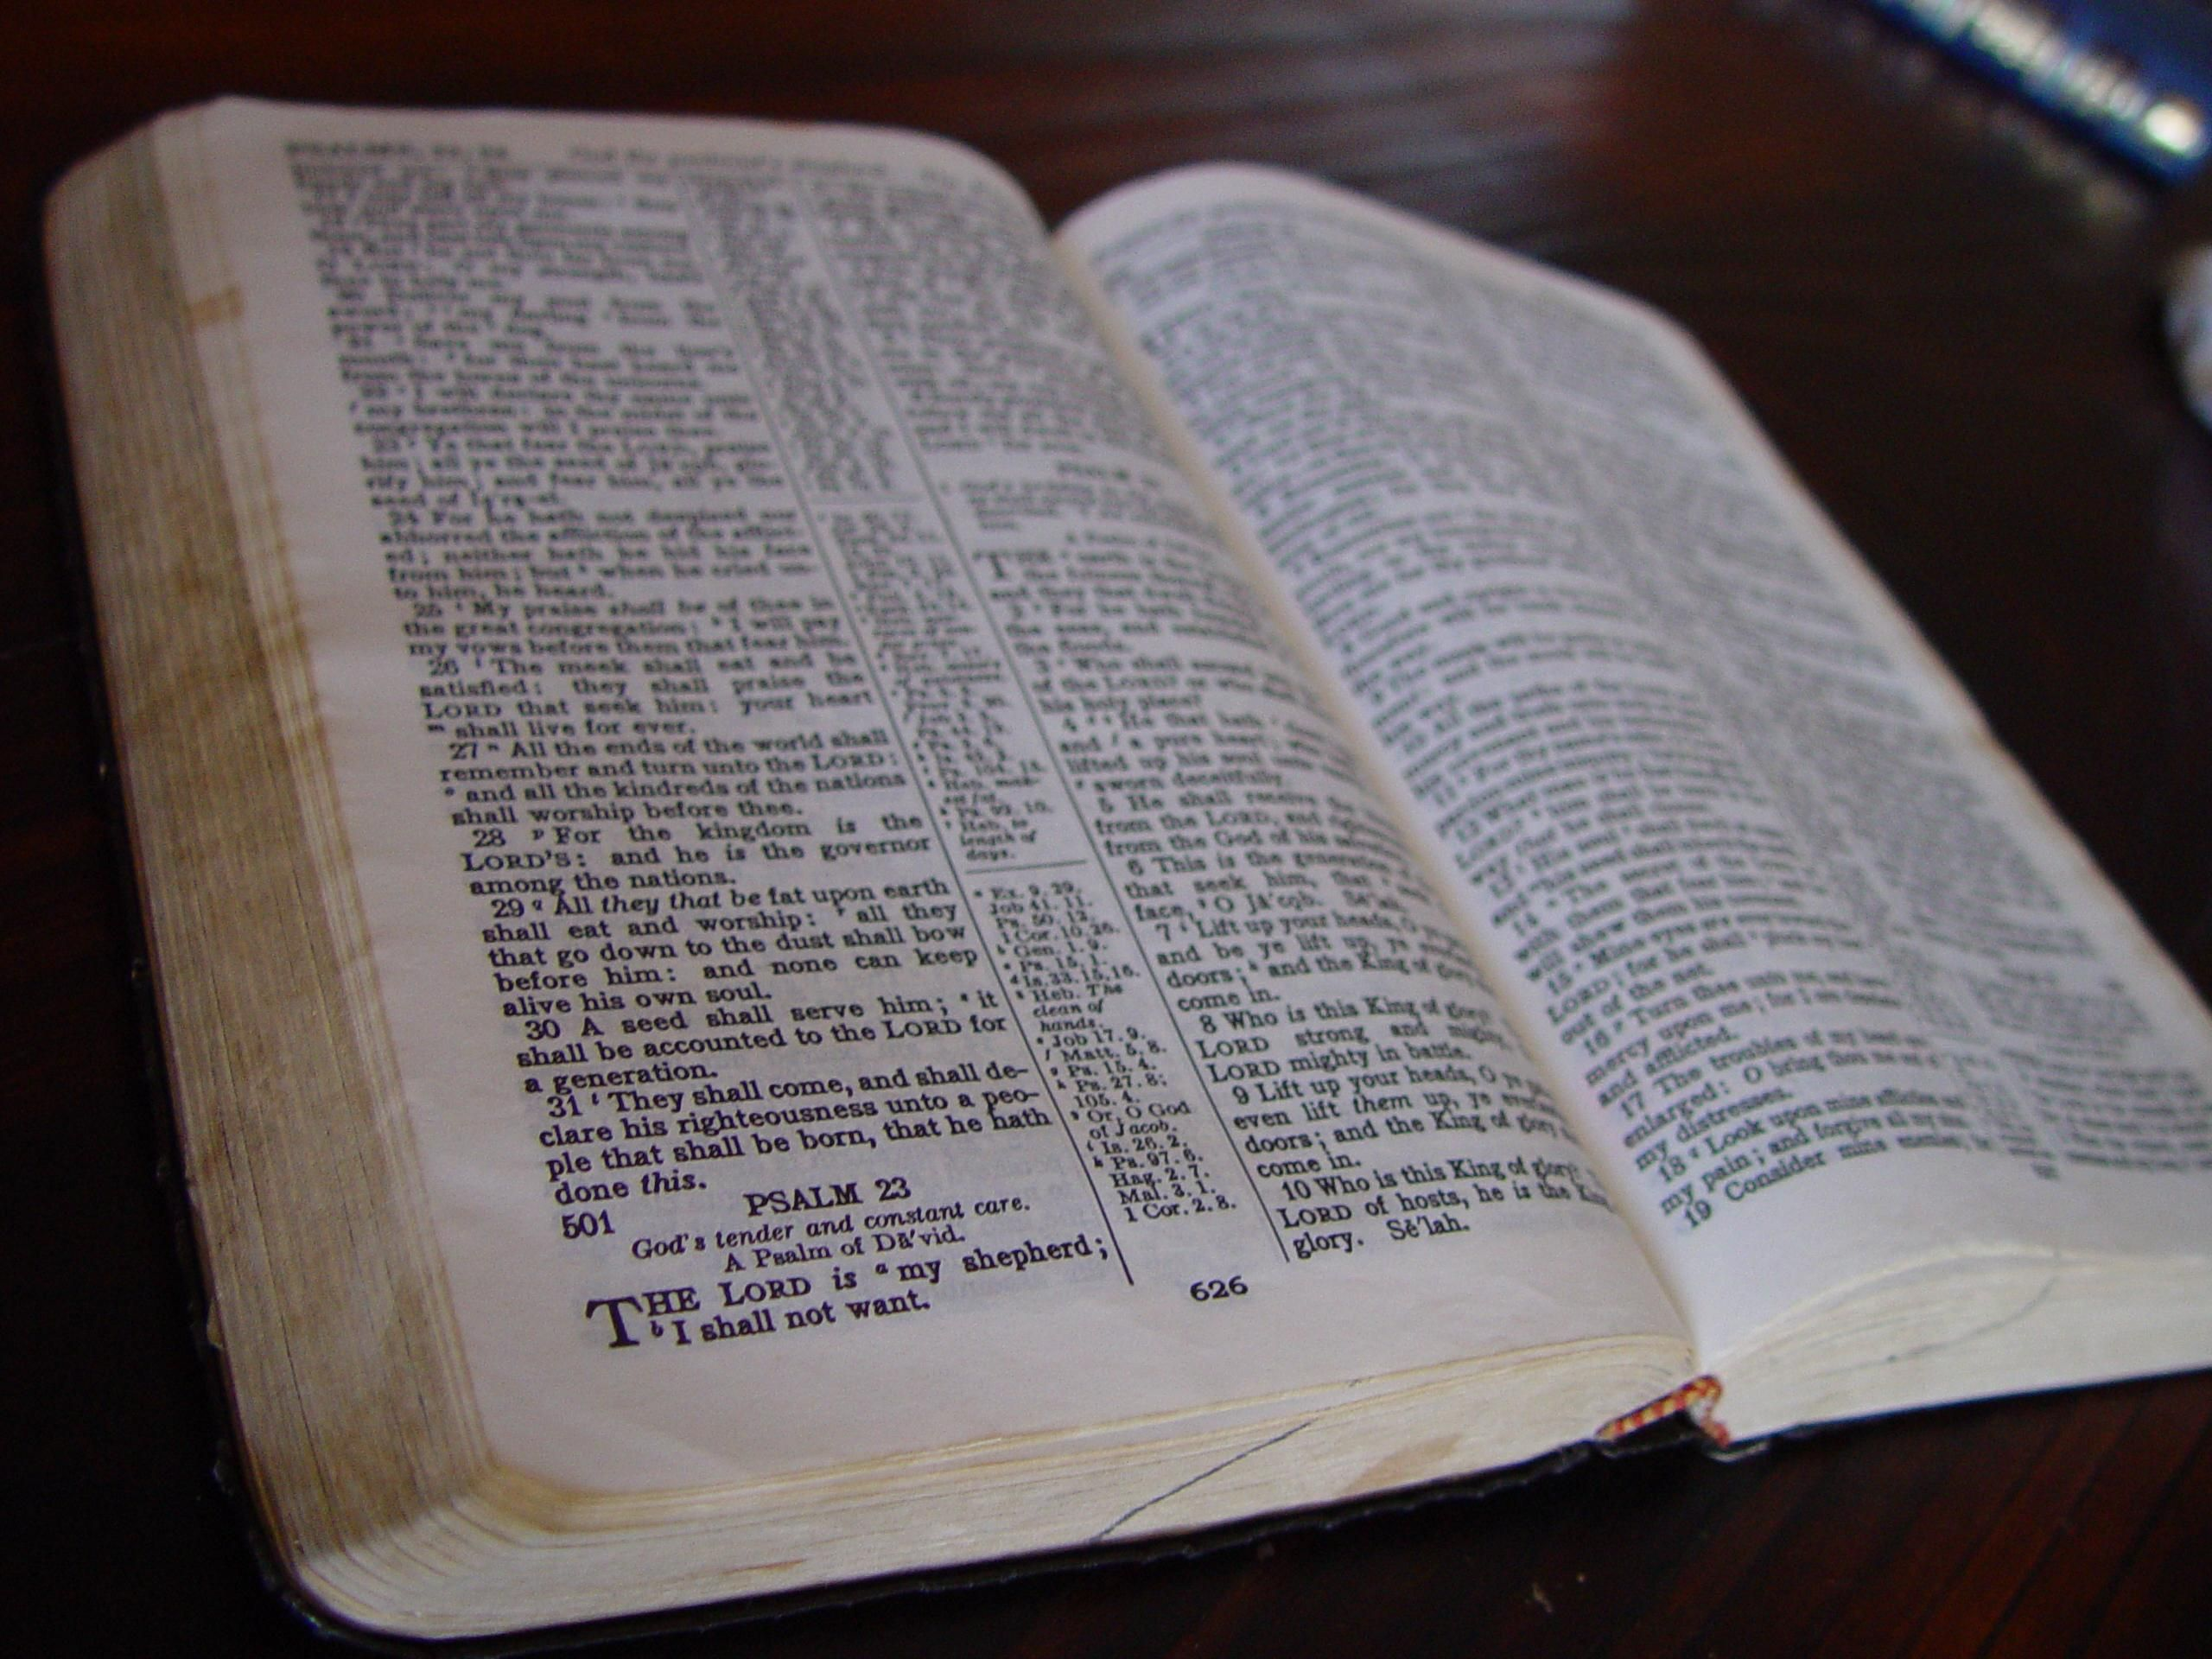 Holy_bible_book